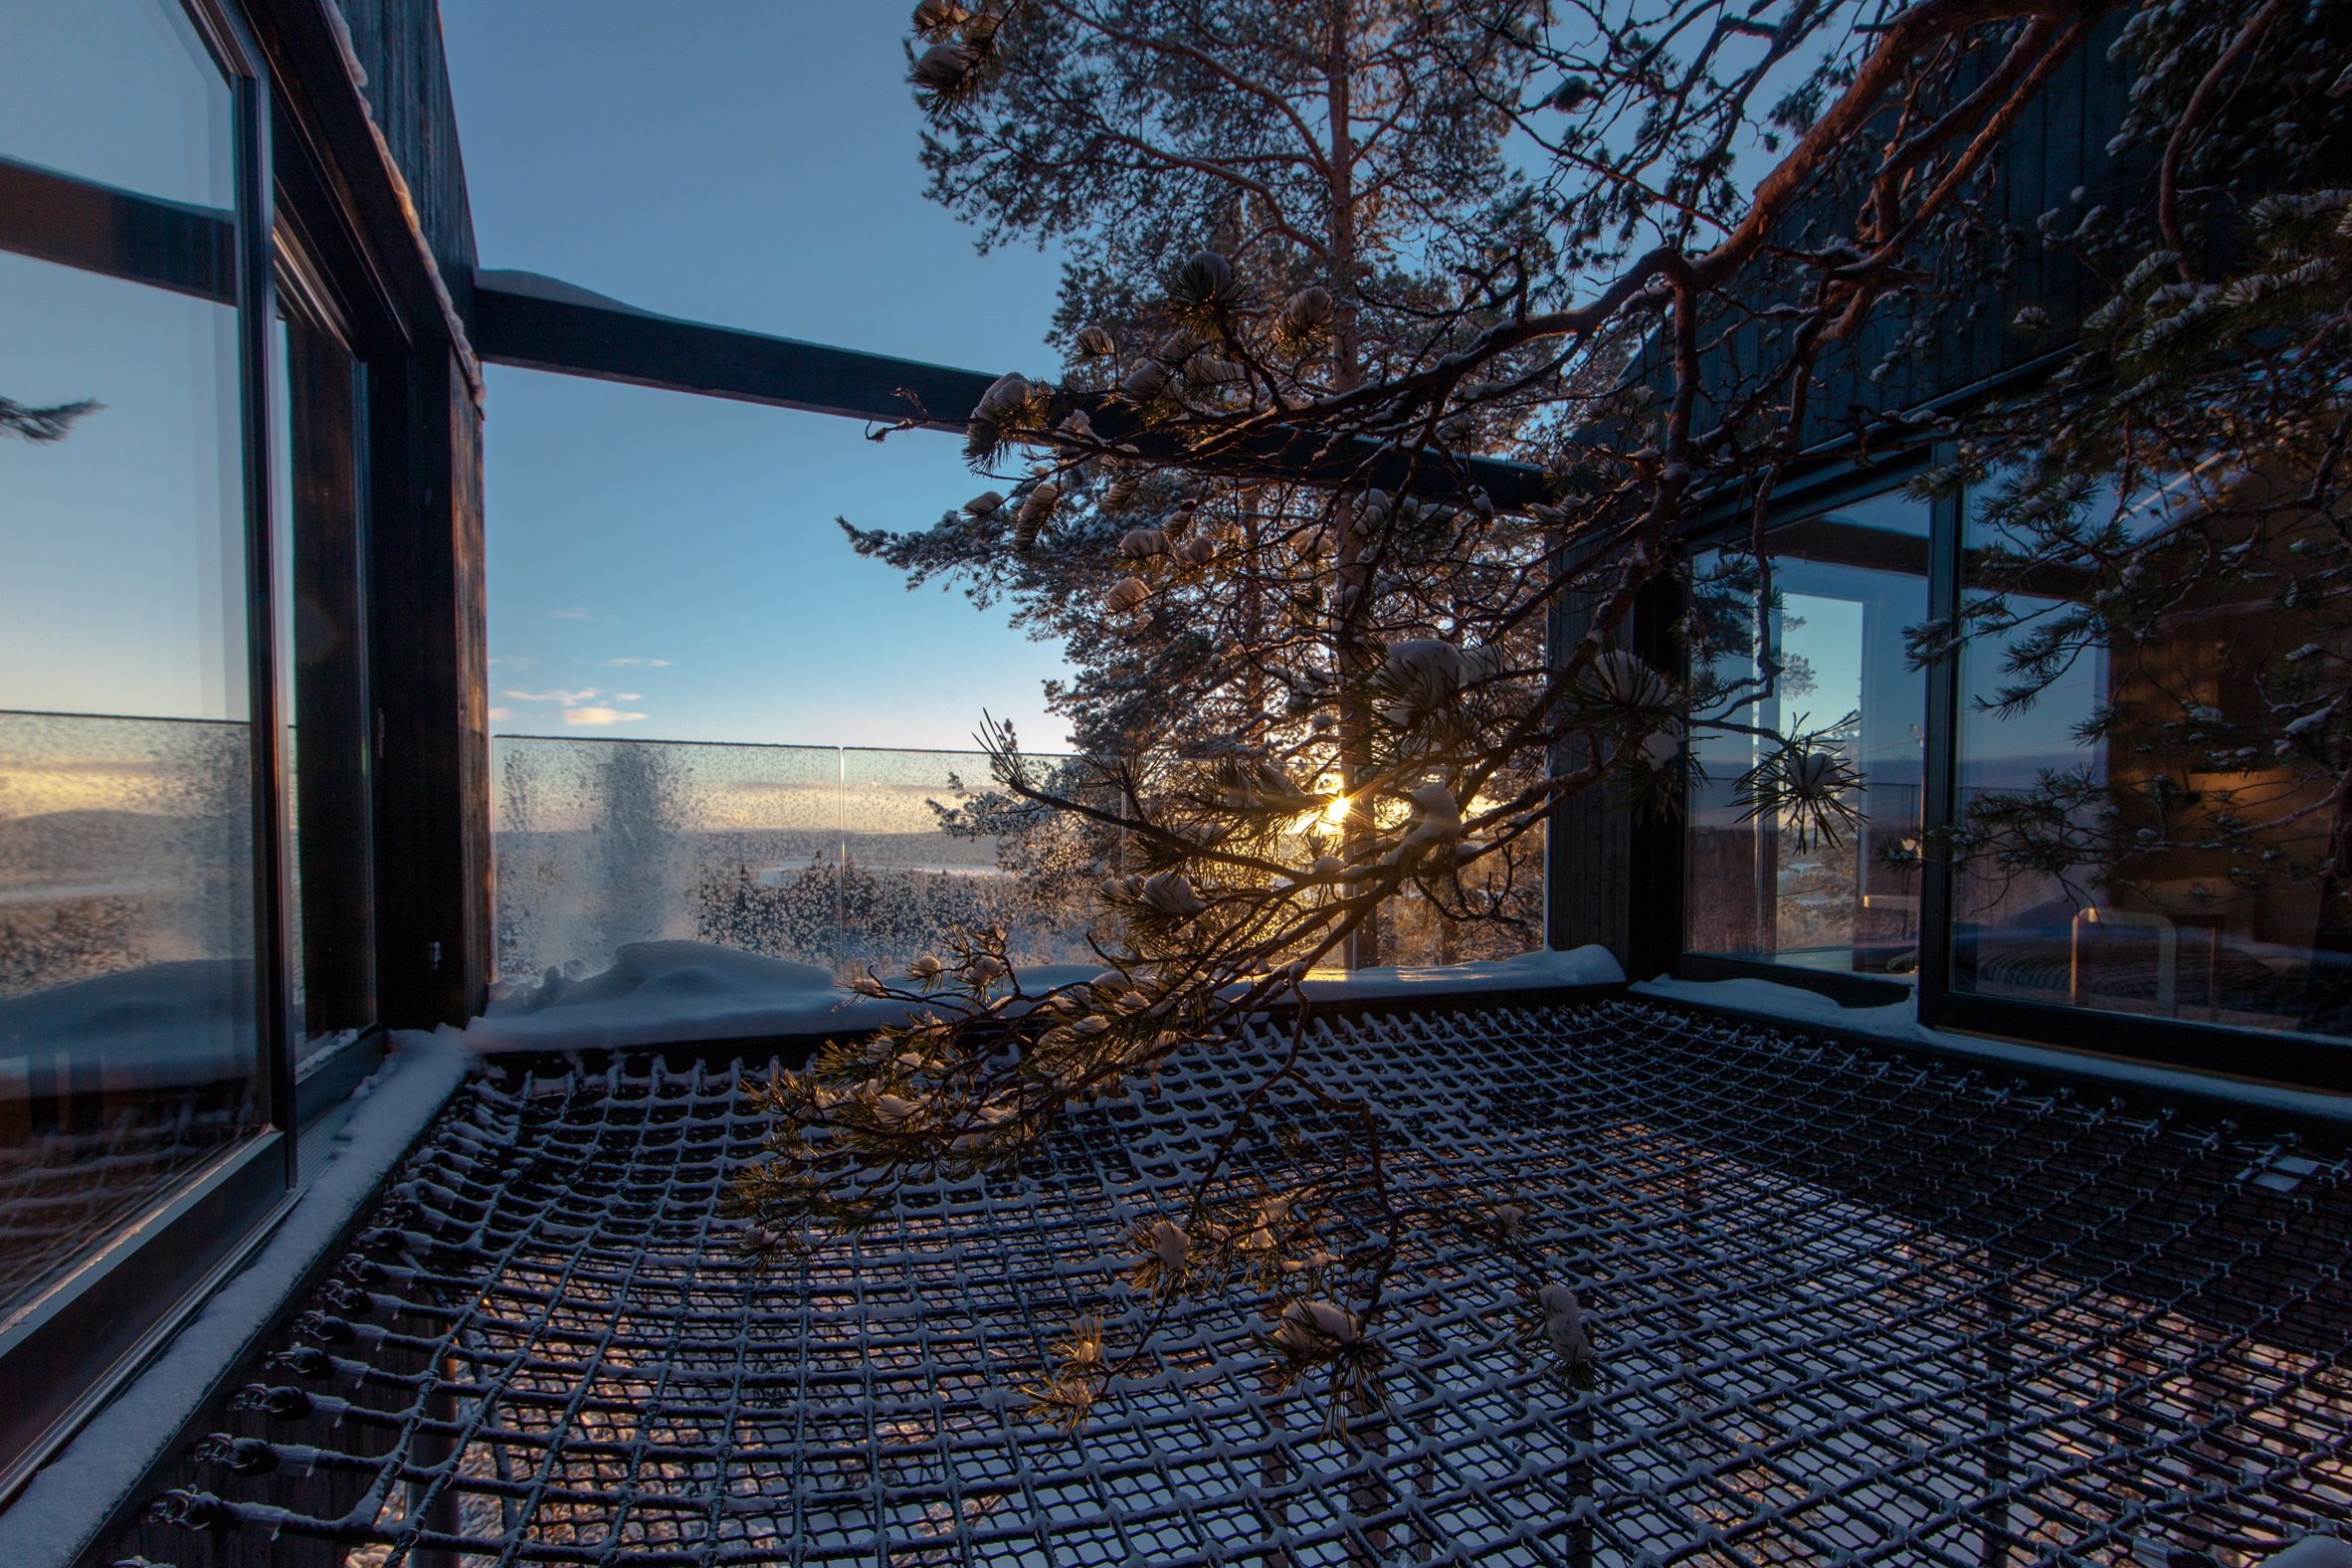 the-7th-room-tree-hotel-snohetta-sweden-architecture_dezeen_2364_col_10.jpg